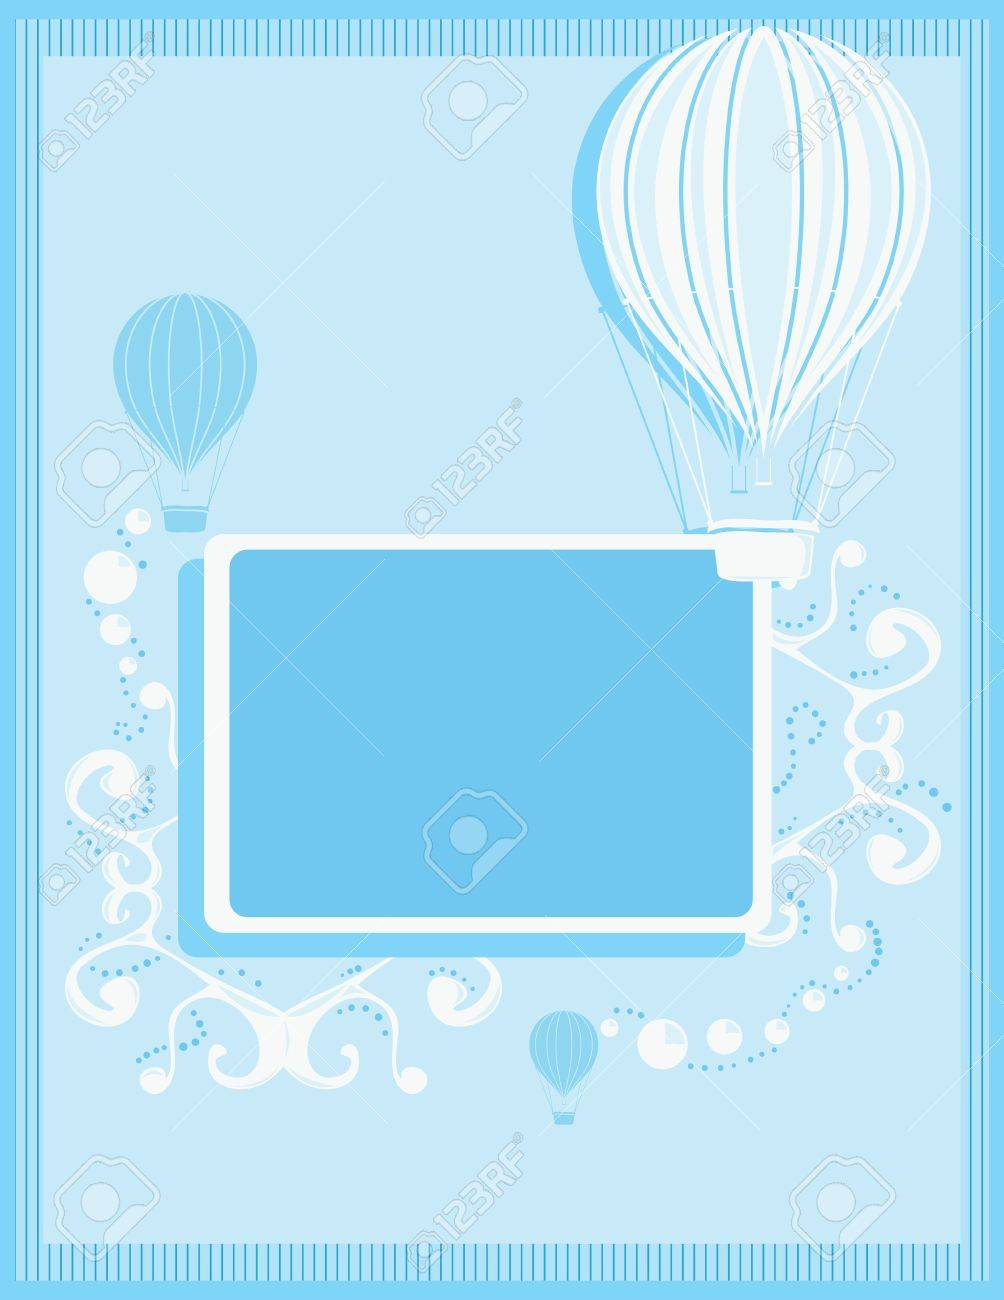 Blue and white hot air balloon background with a rectangular frame and white abstract elements - 7315118